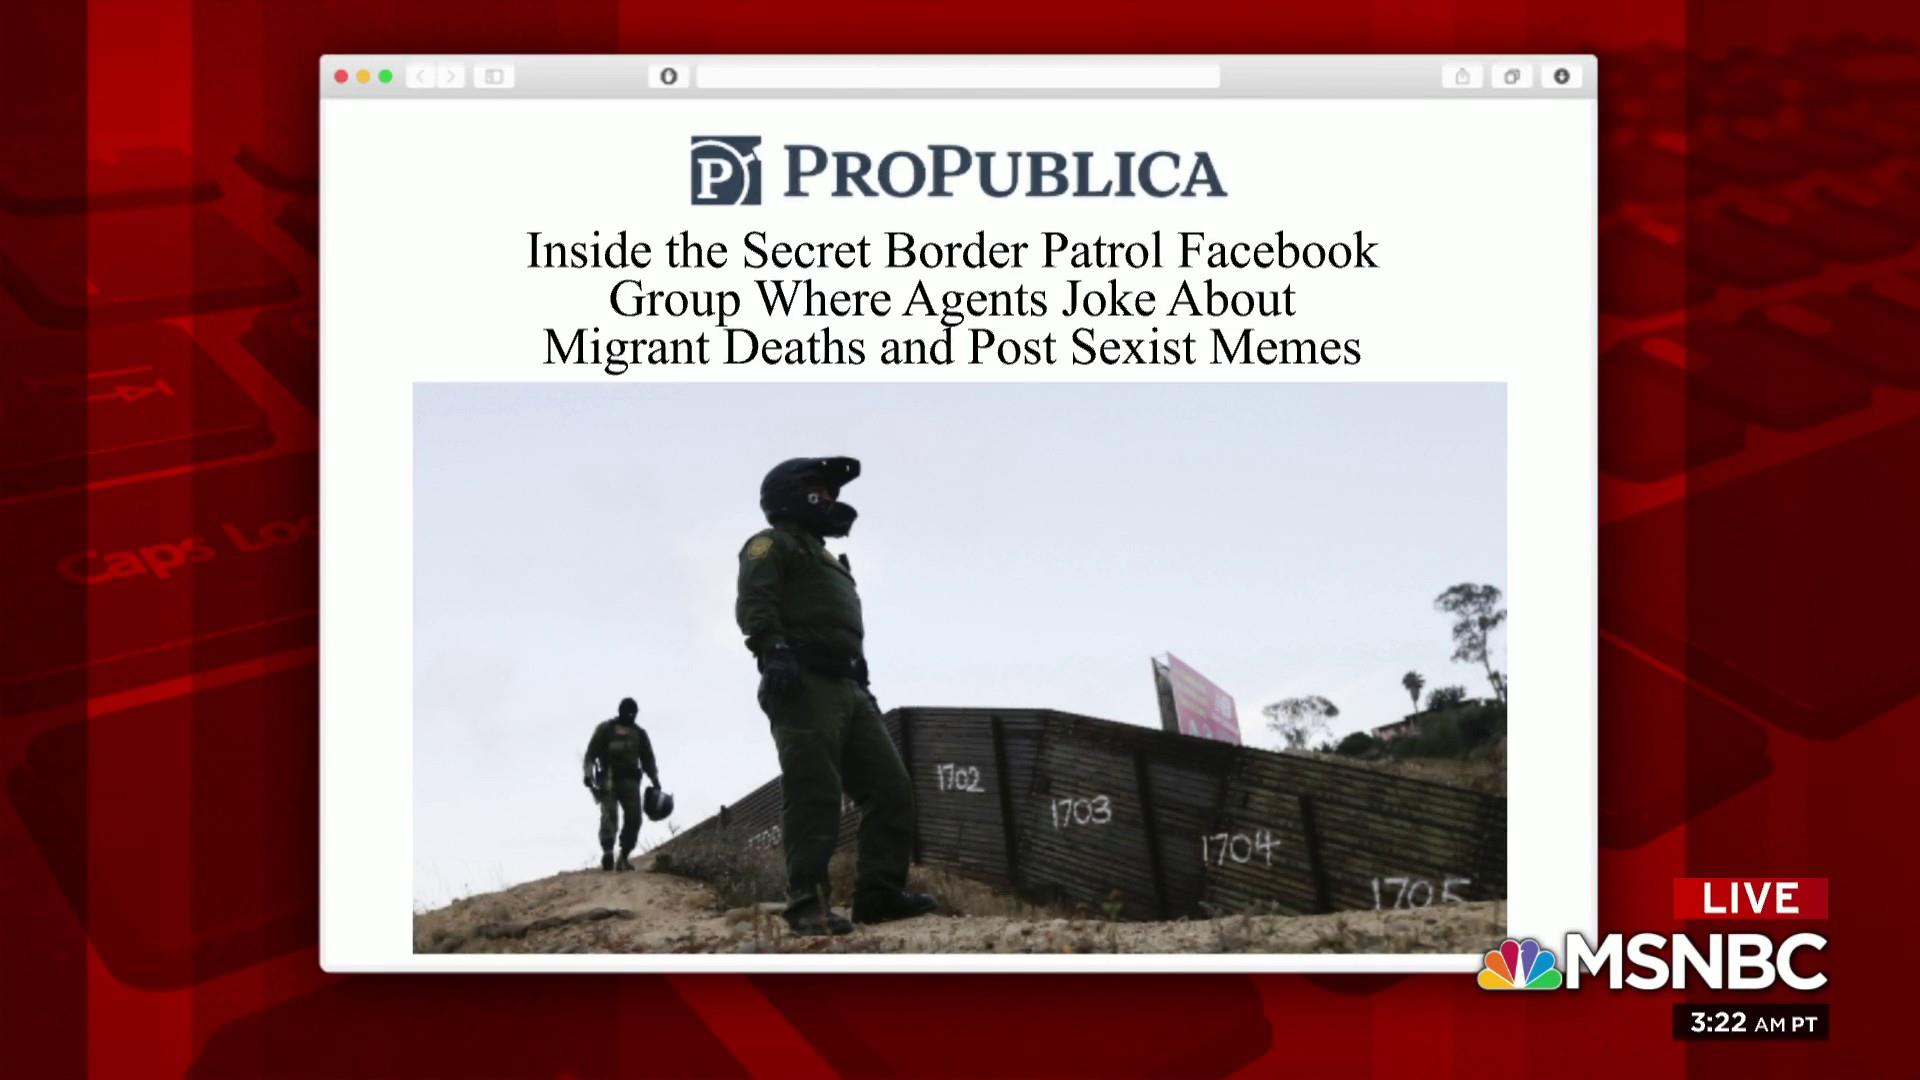 Reporting exposes border patrol 'culture of cruelty'